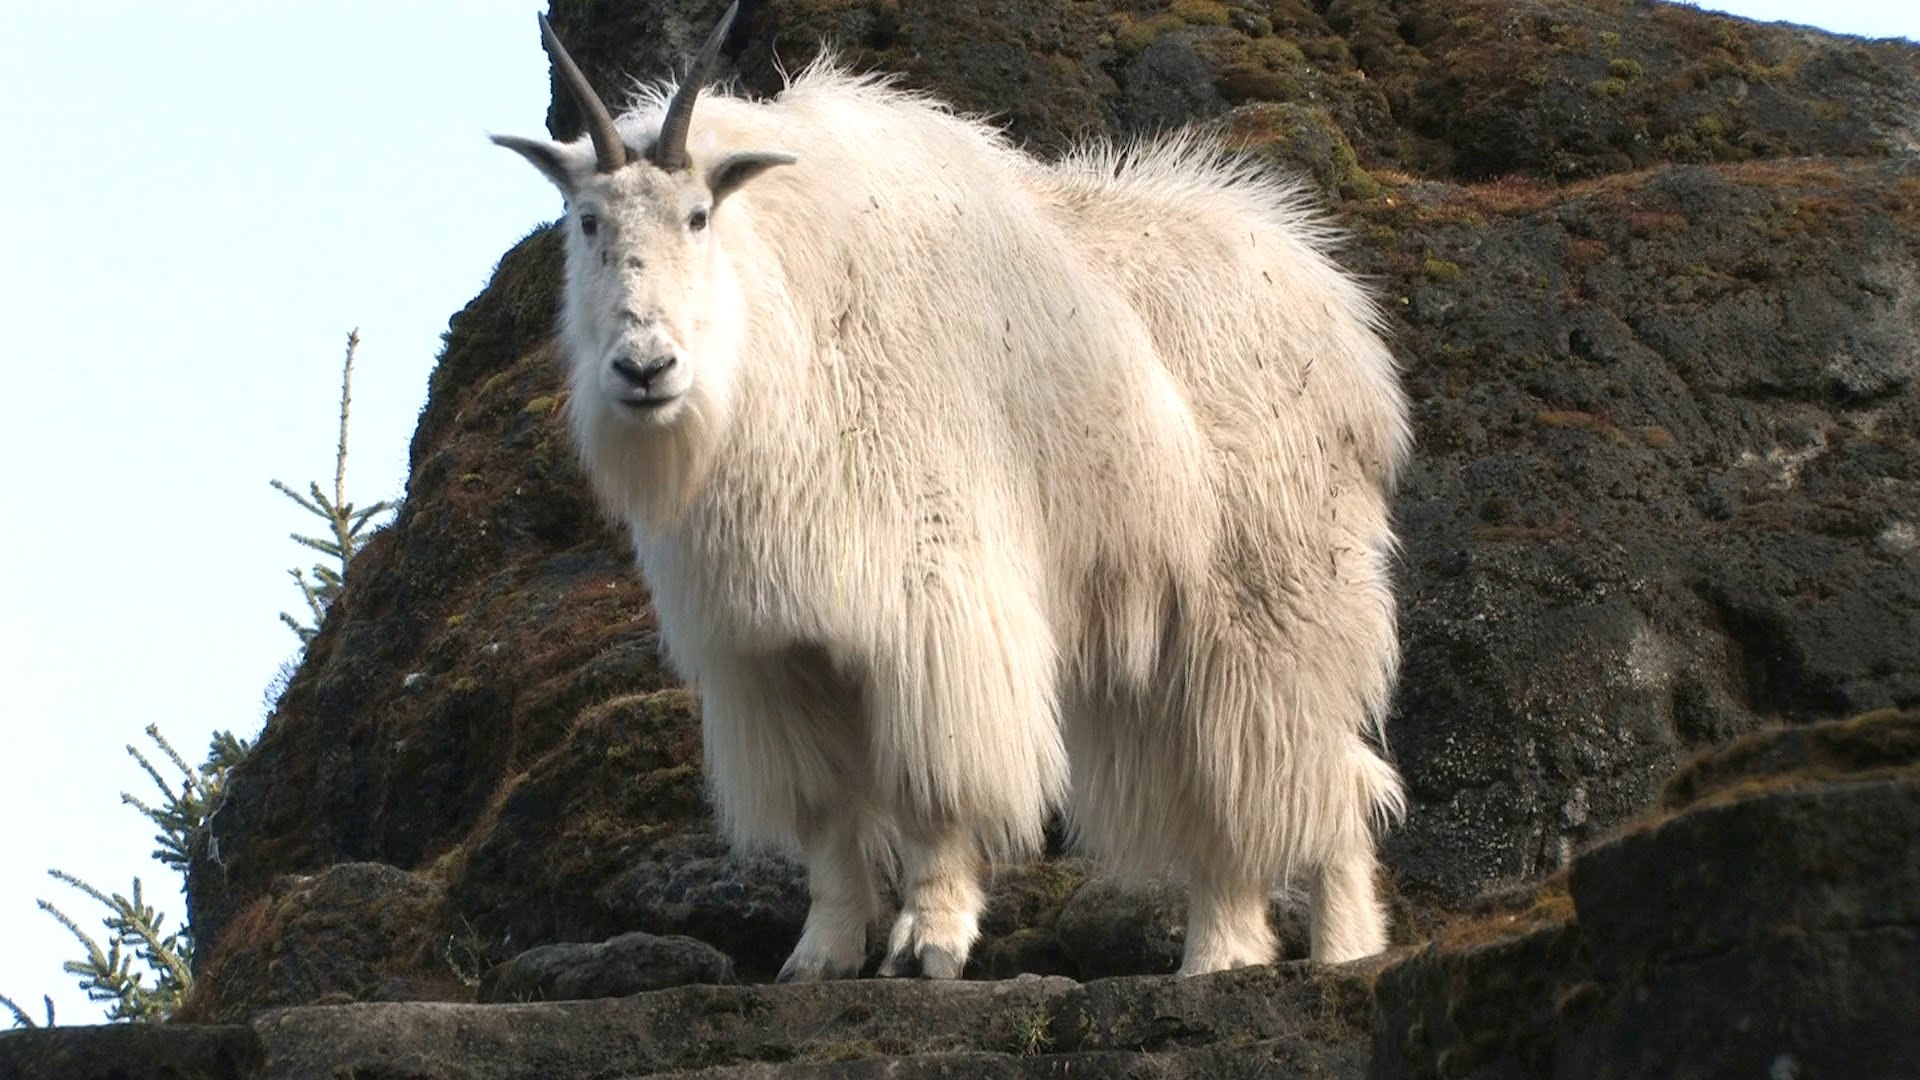 The Incredibly Stealthy Strong Mountain Goat